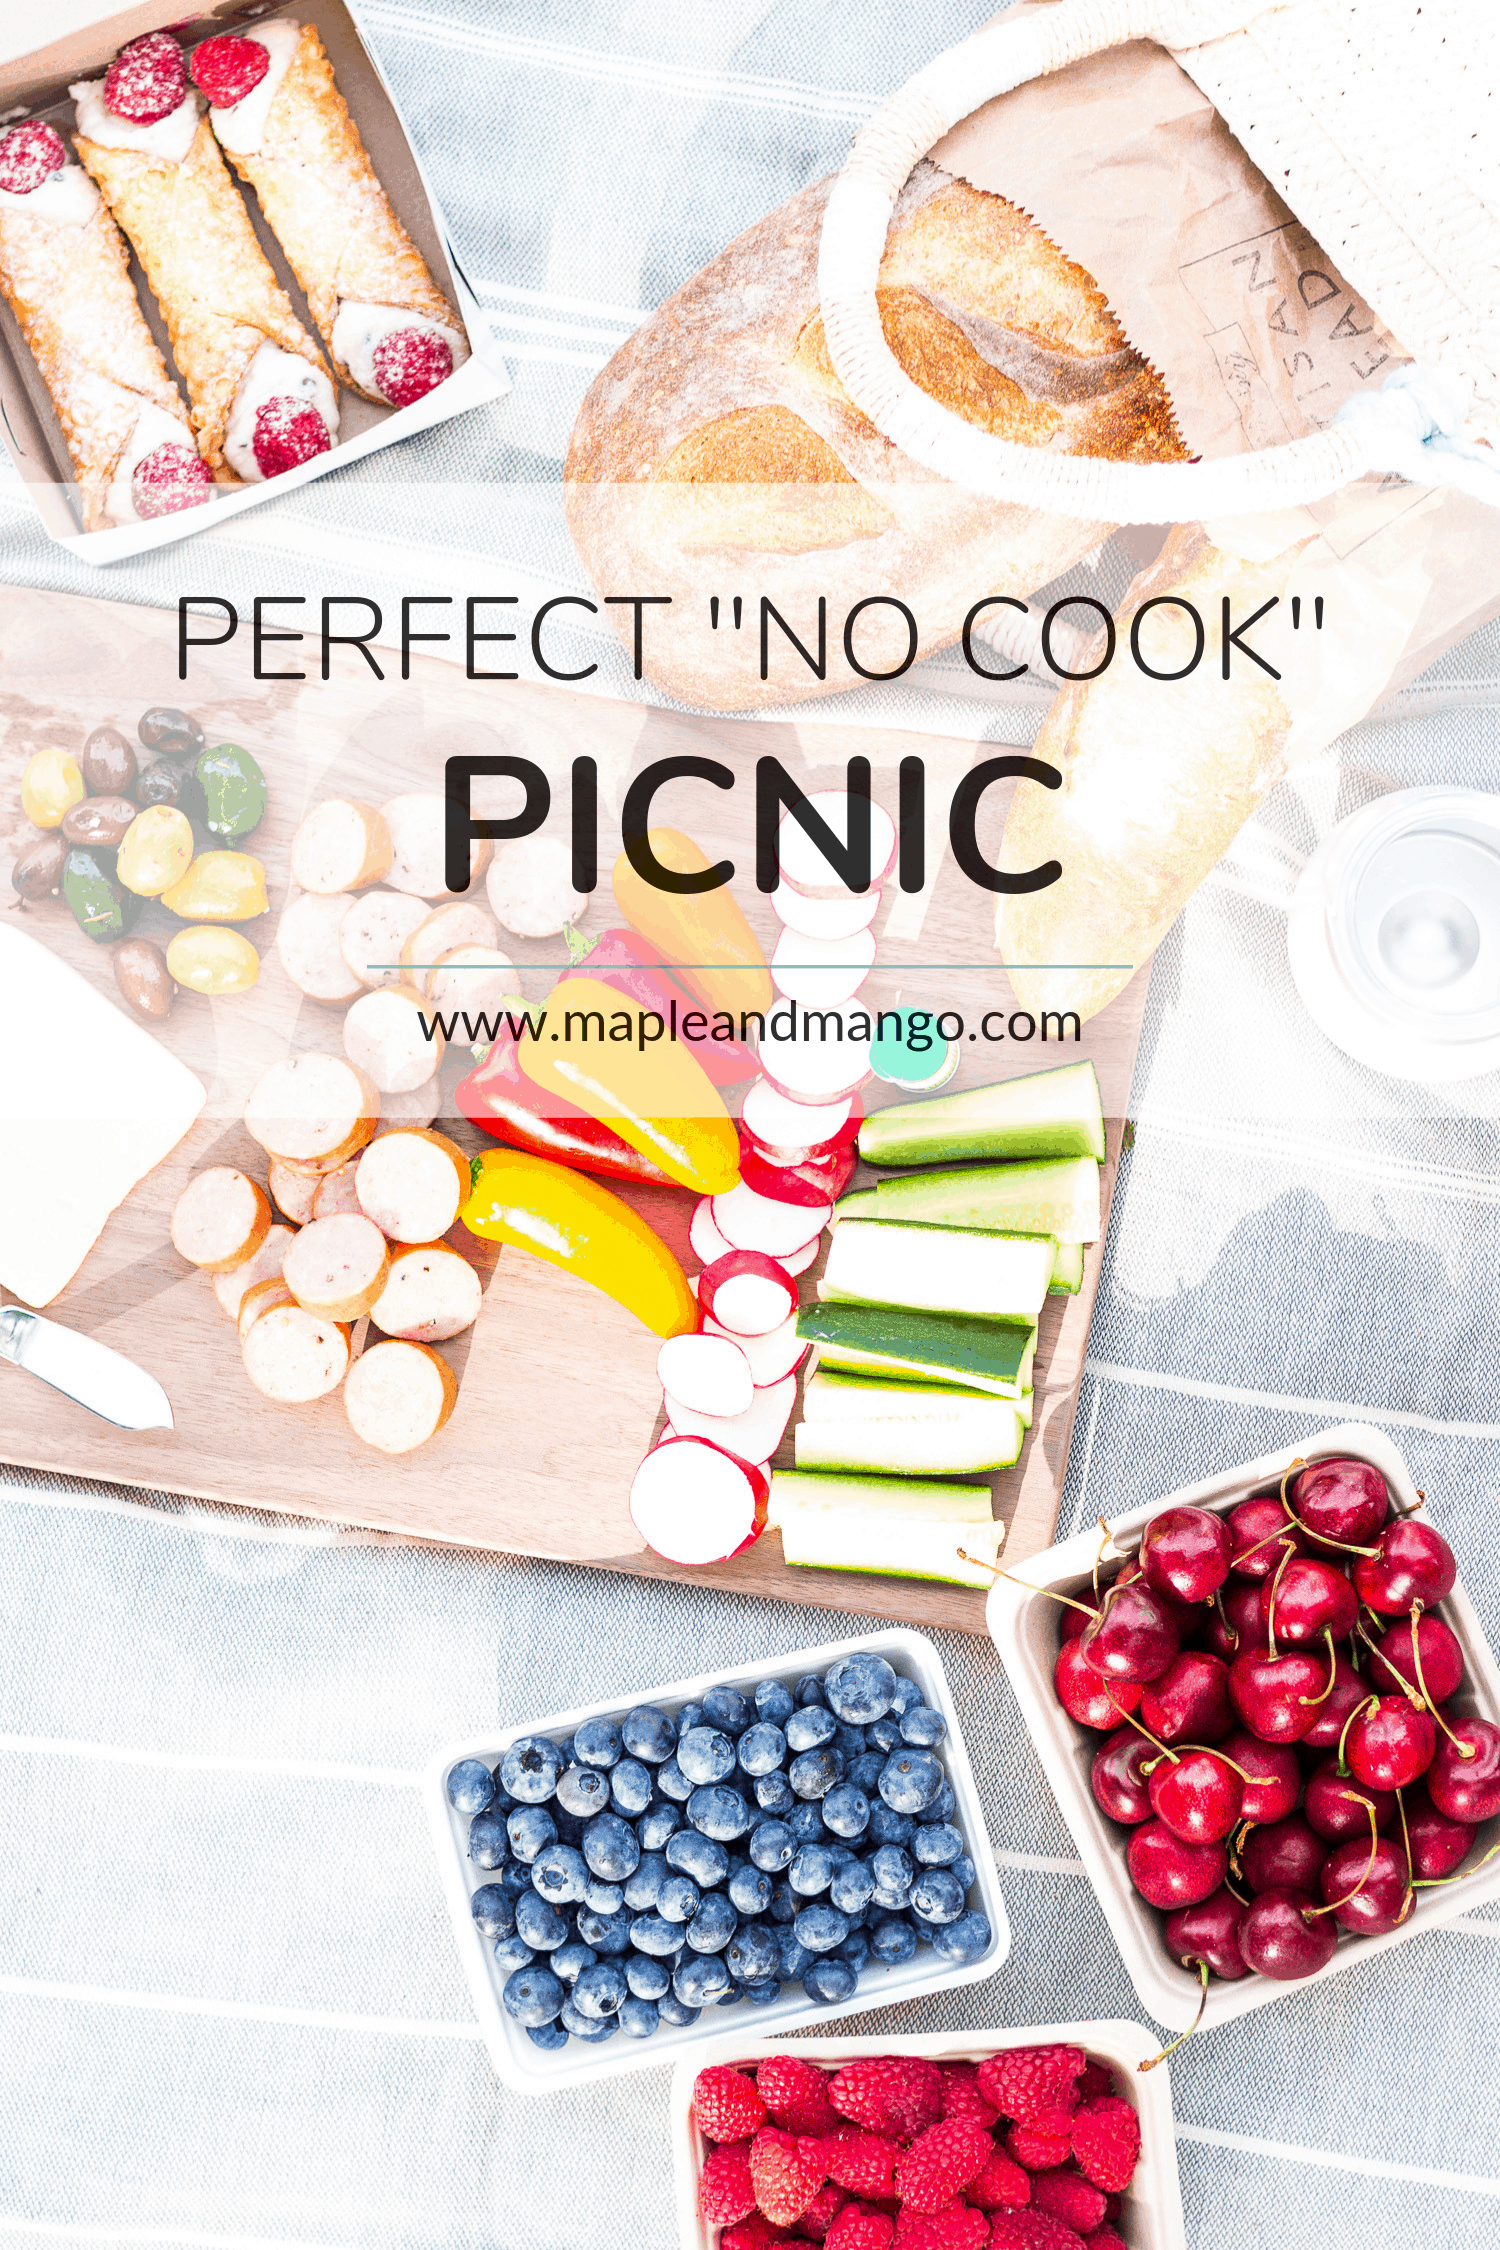 Pinterest Image with text overlay for the Perfect No Cook Picnic